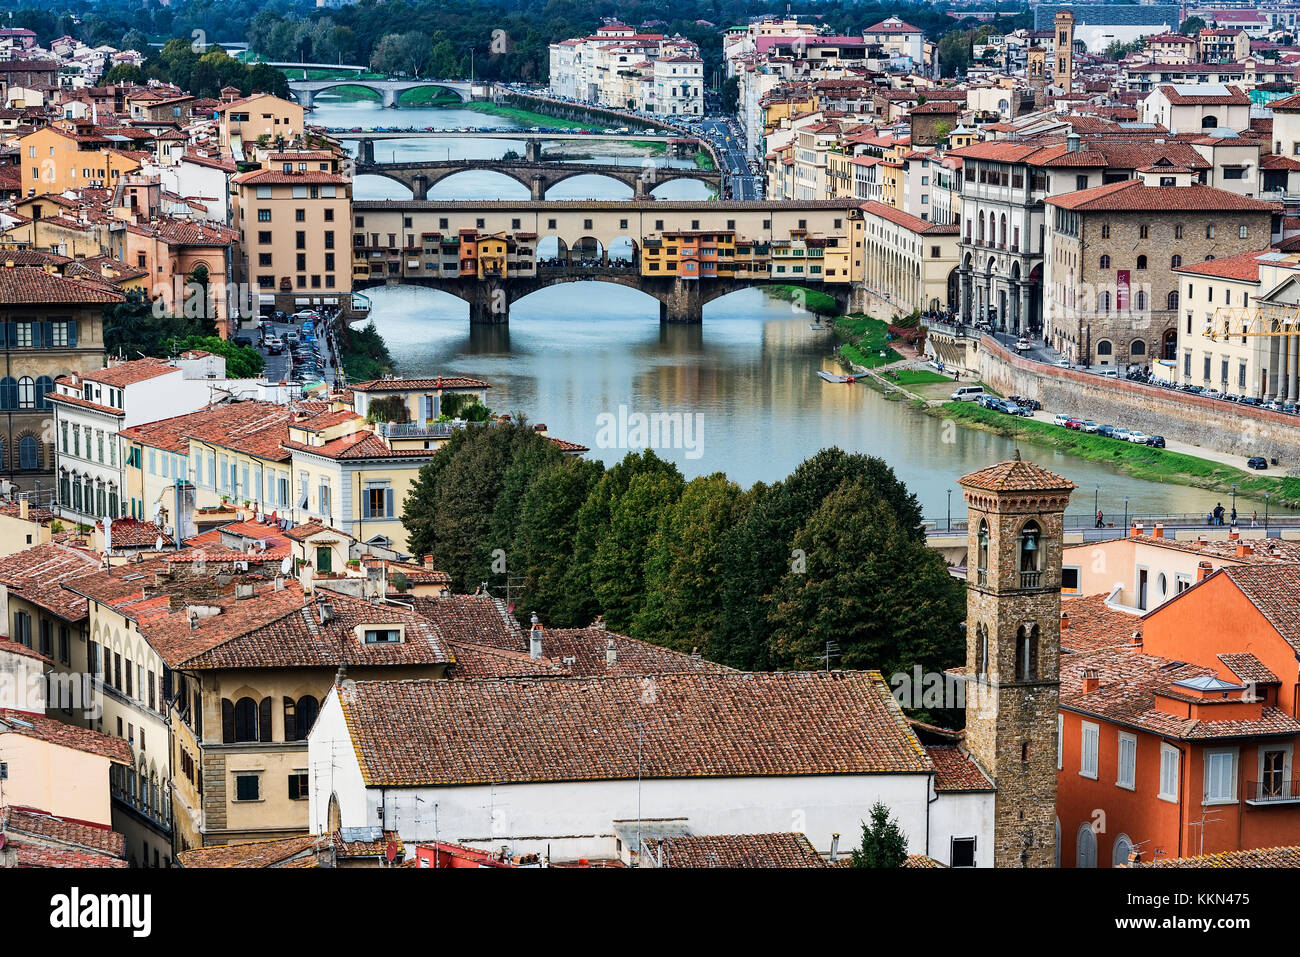 City view and the River Arno, Florence, Italy. - Stock Image